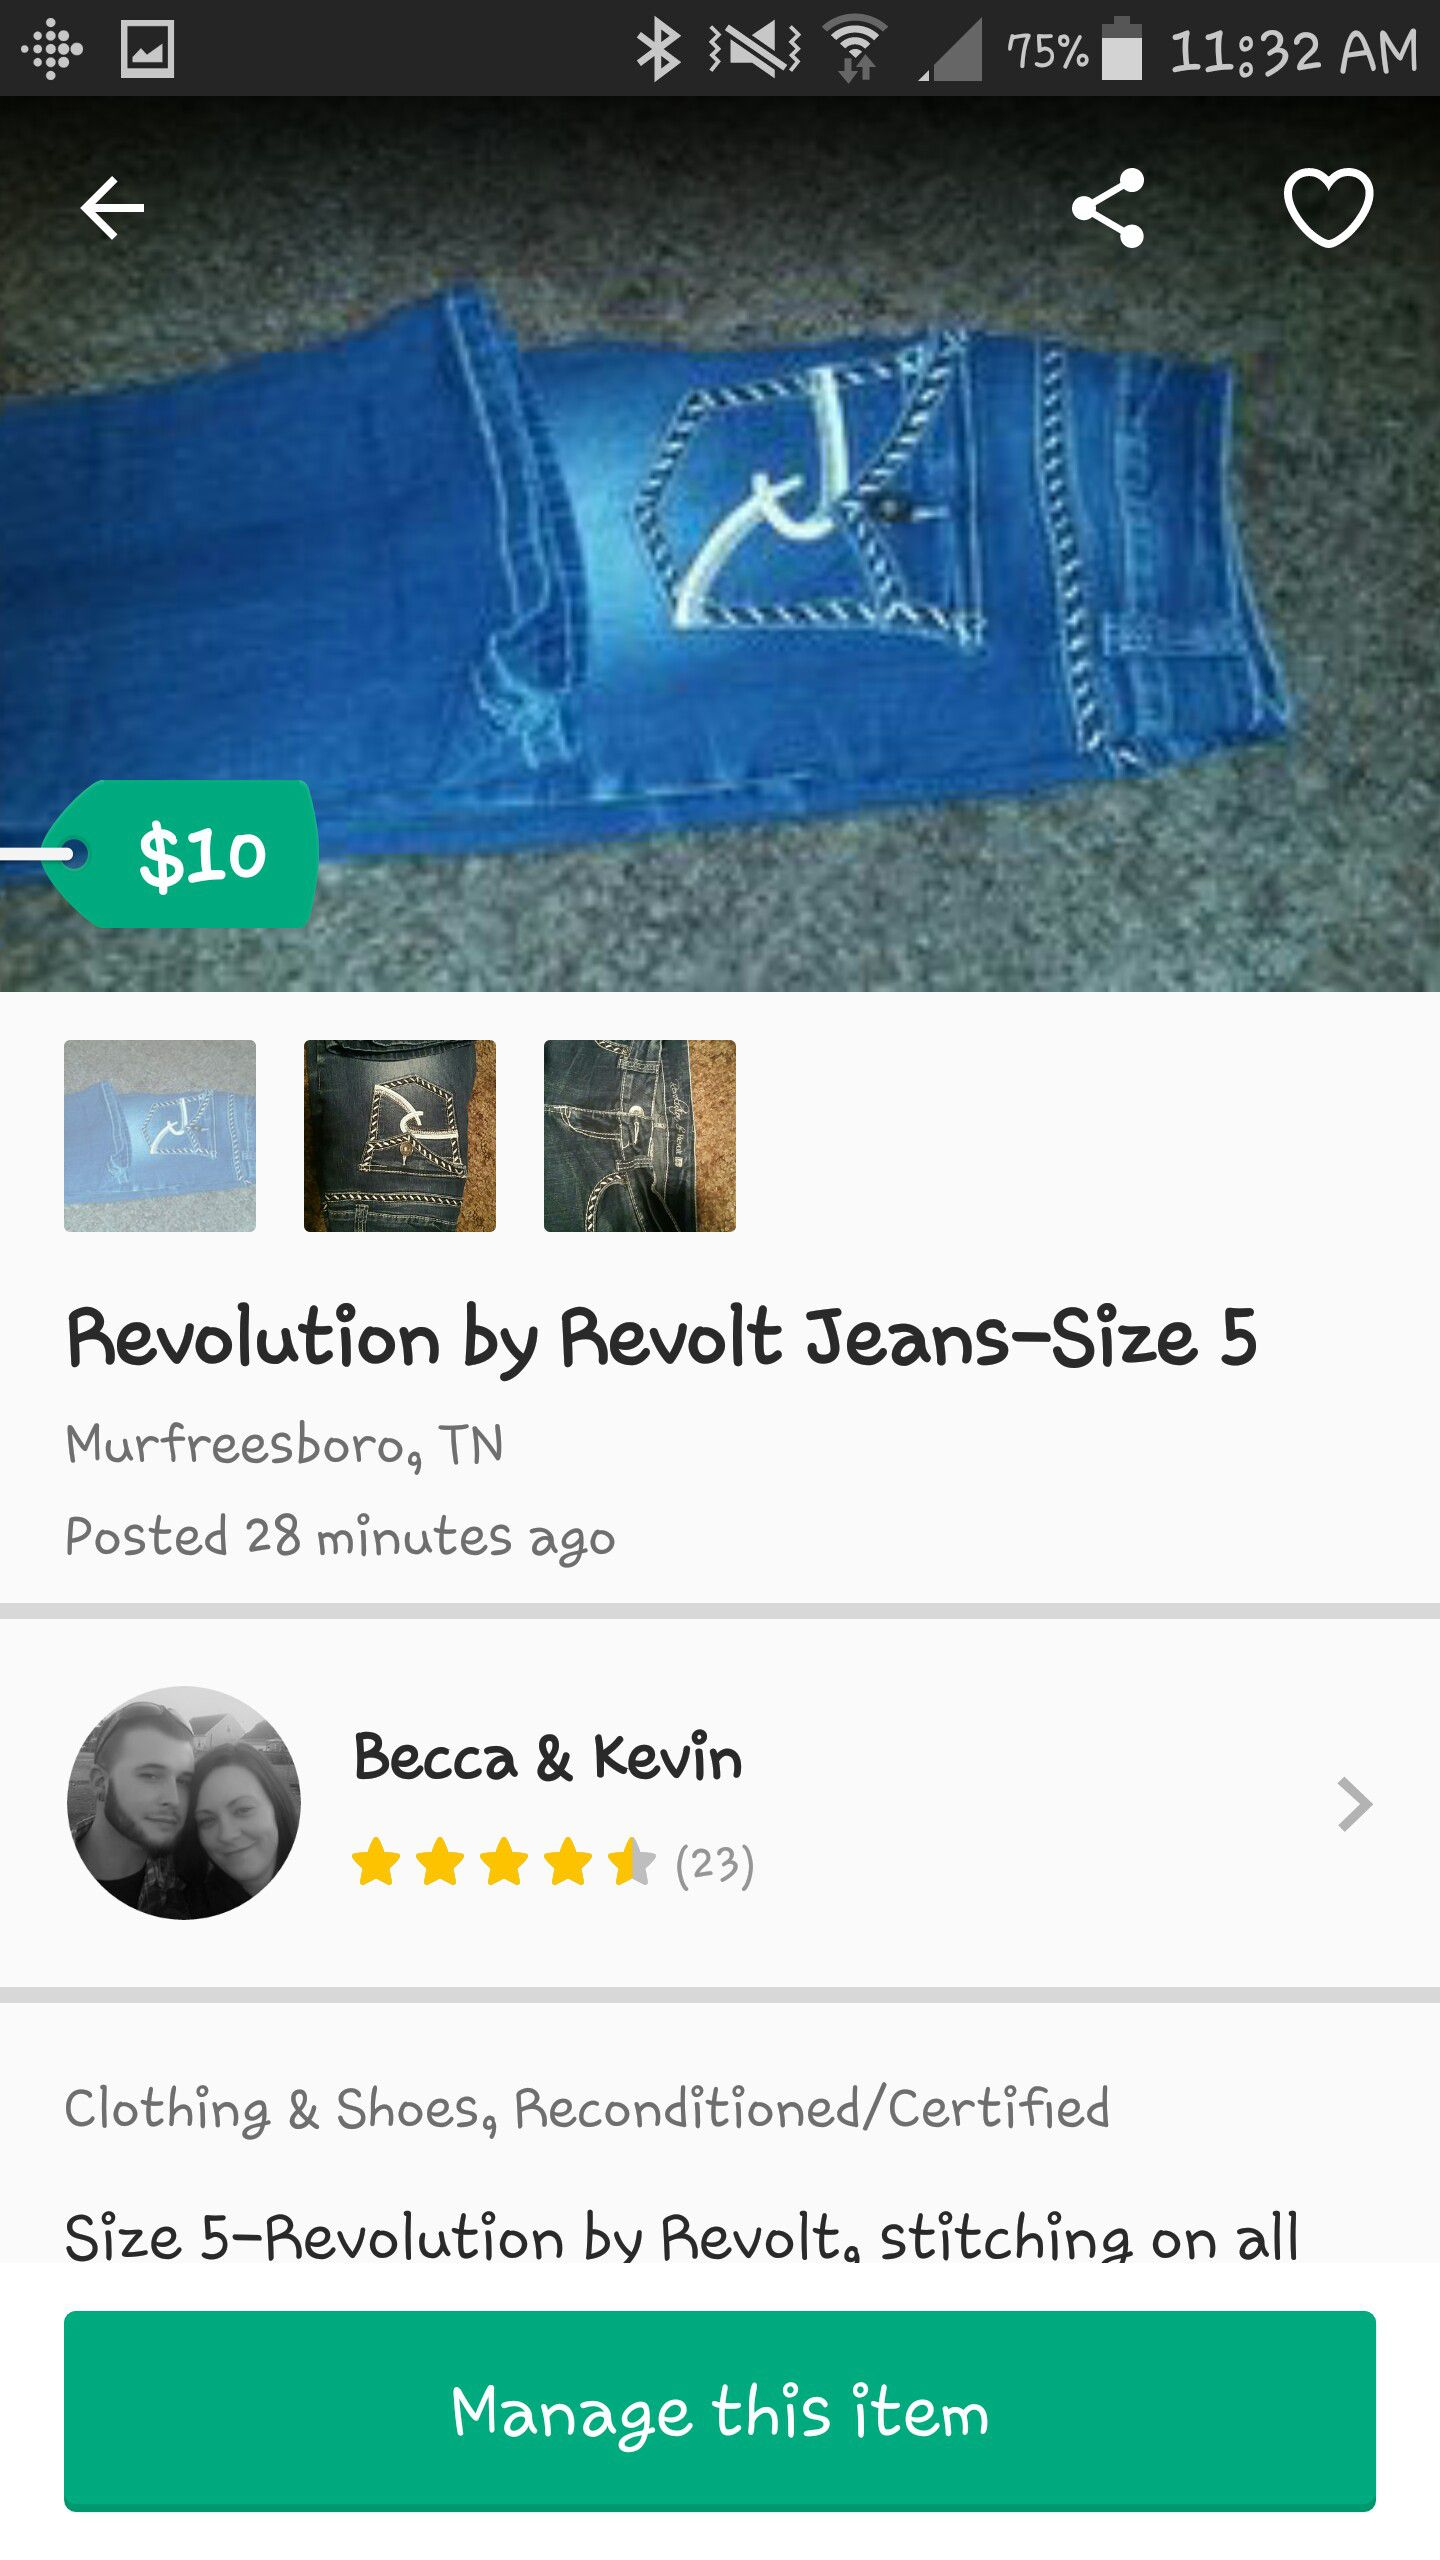 3 Pair of Jeans (5/6 size)